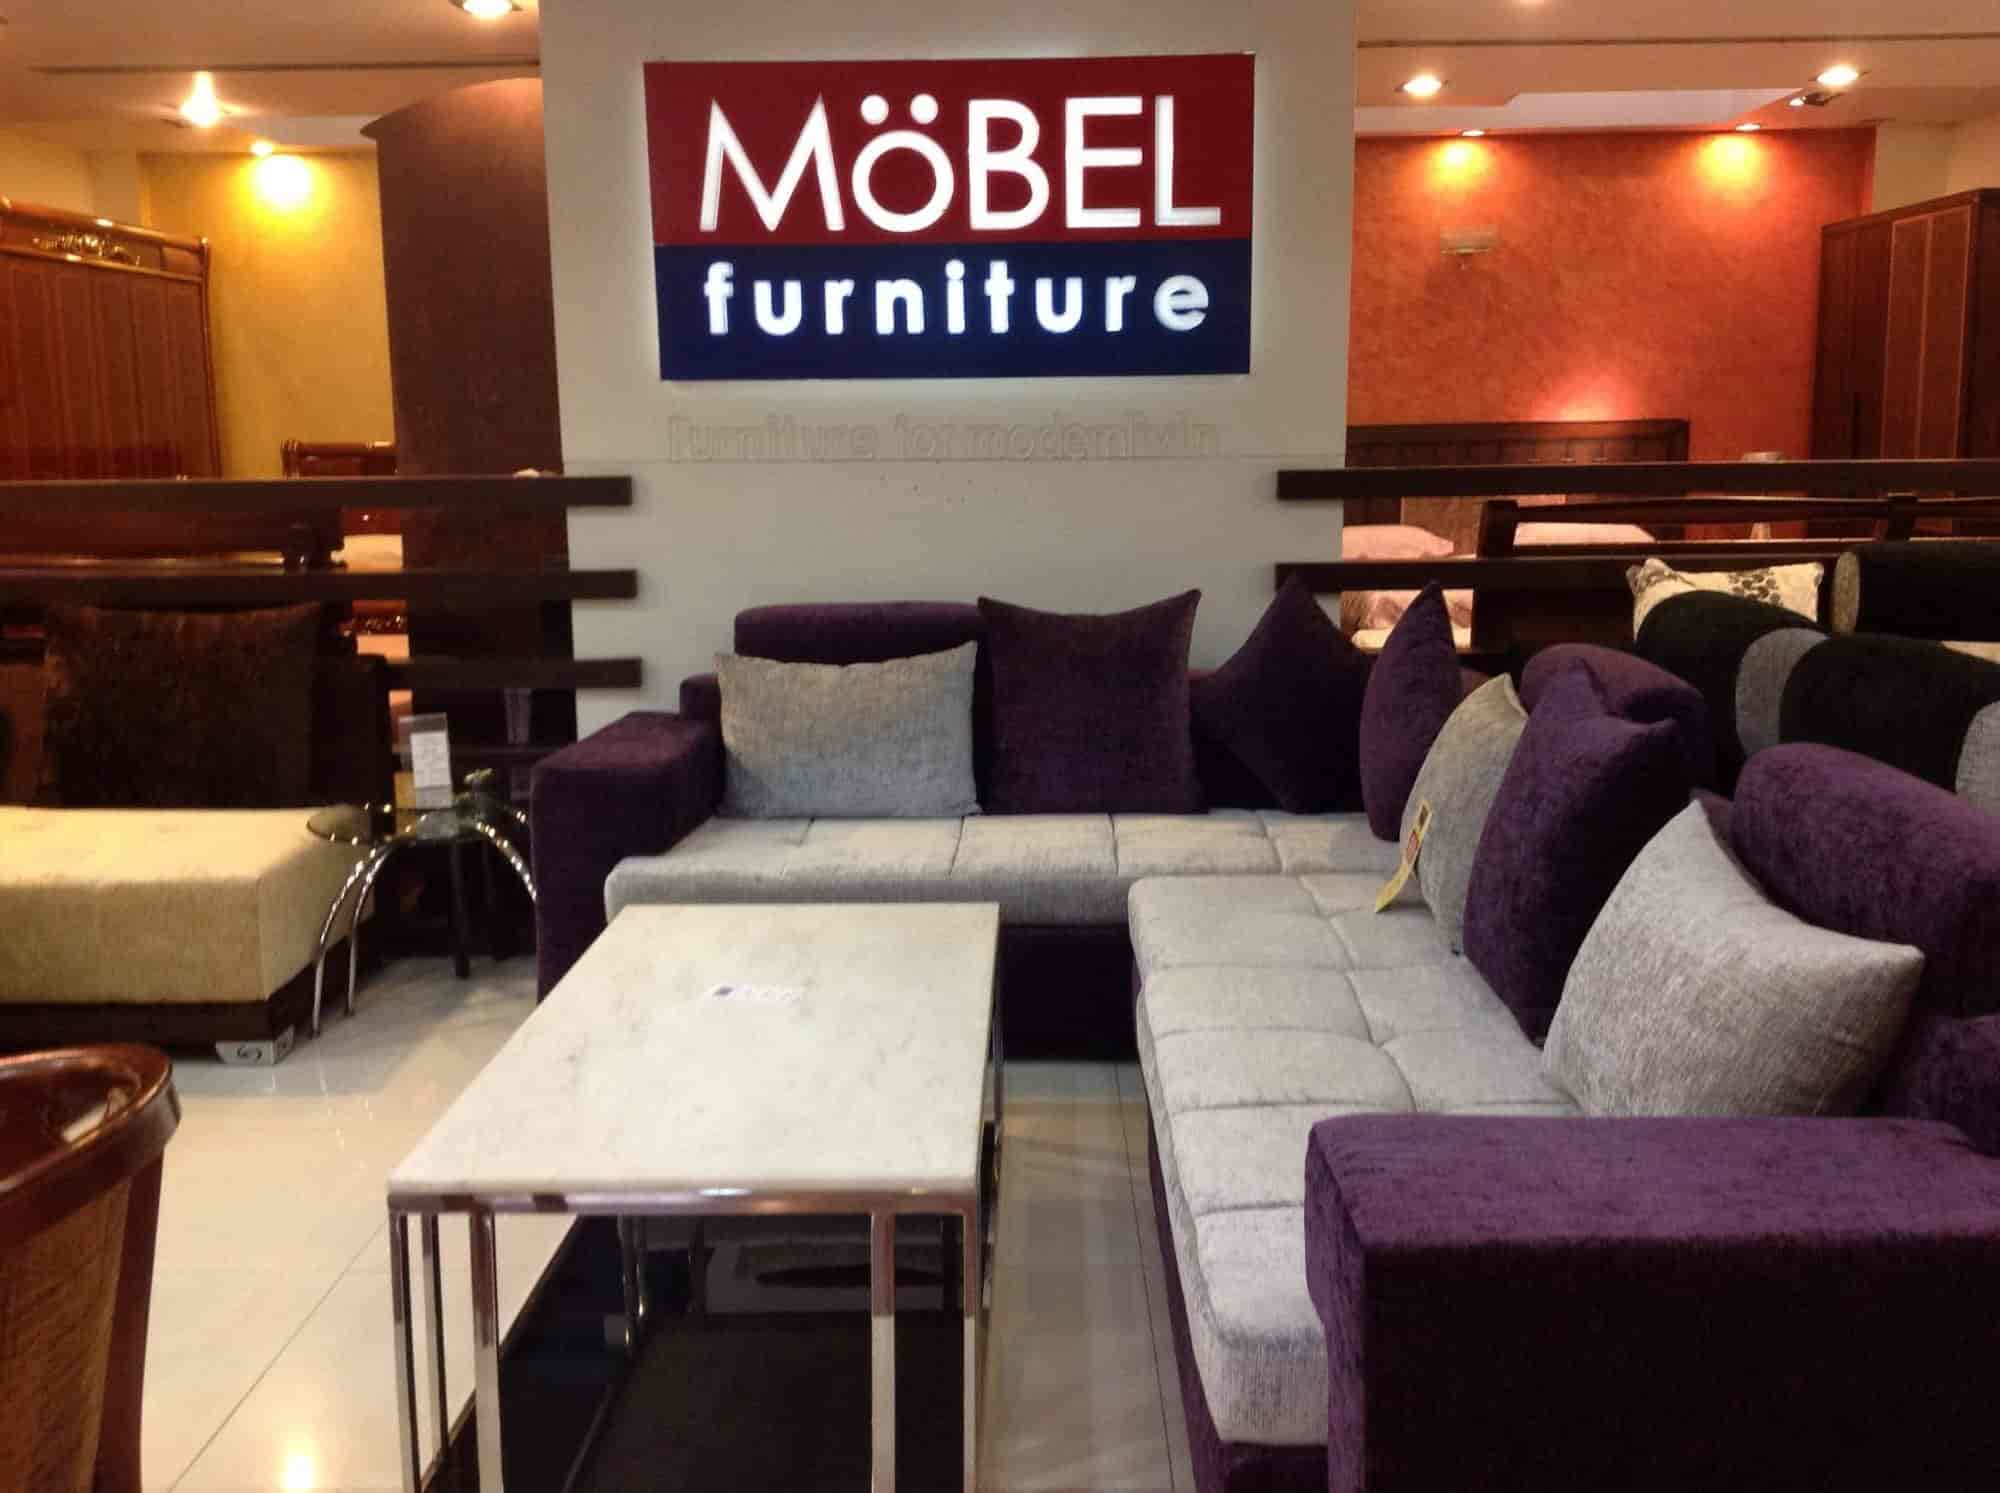 furniture mobel furniture photos baguihati kolkata furniture dealers mobel